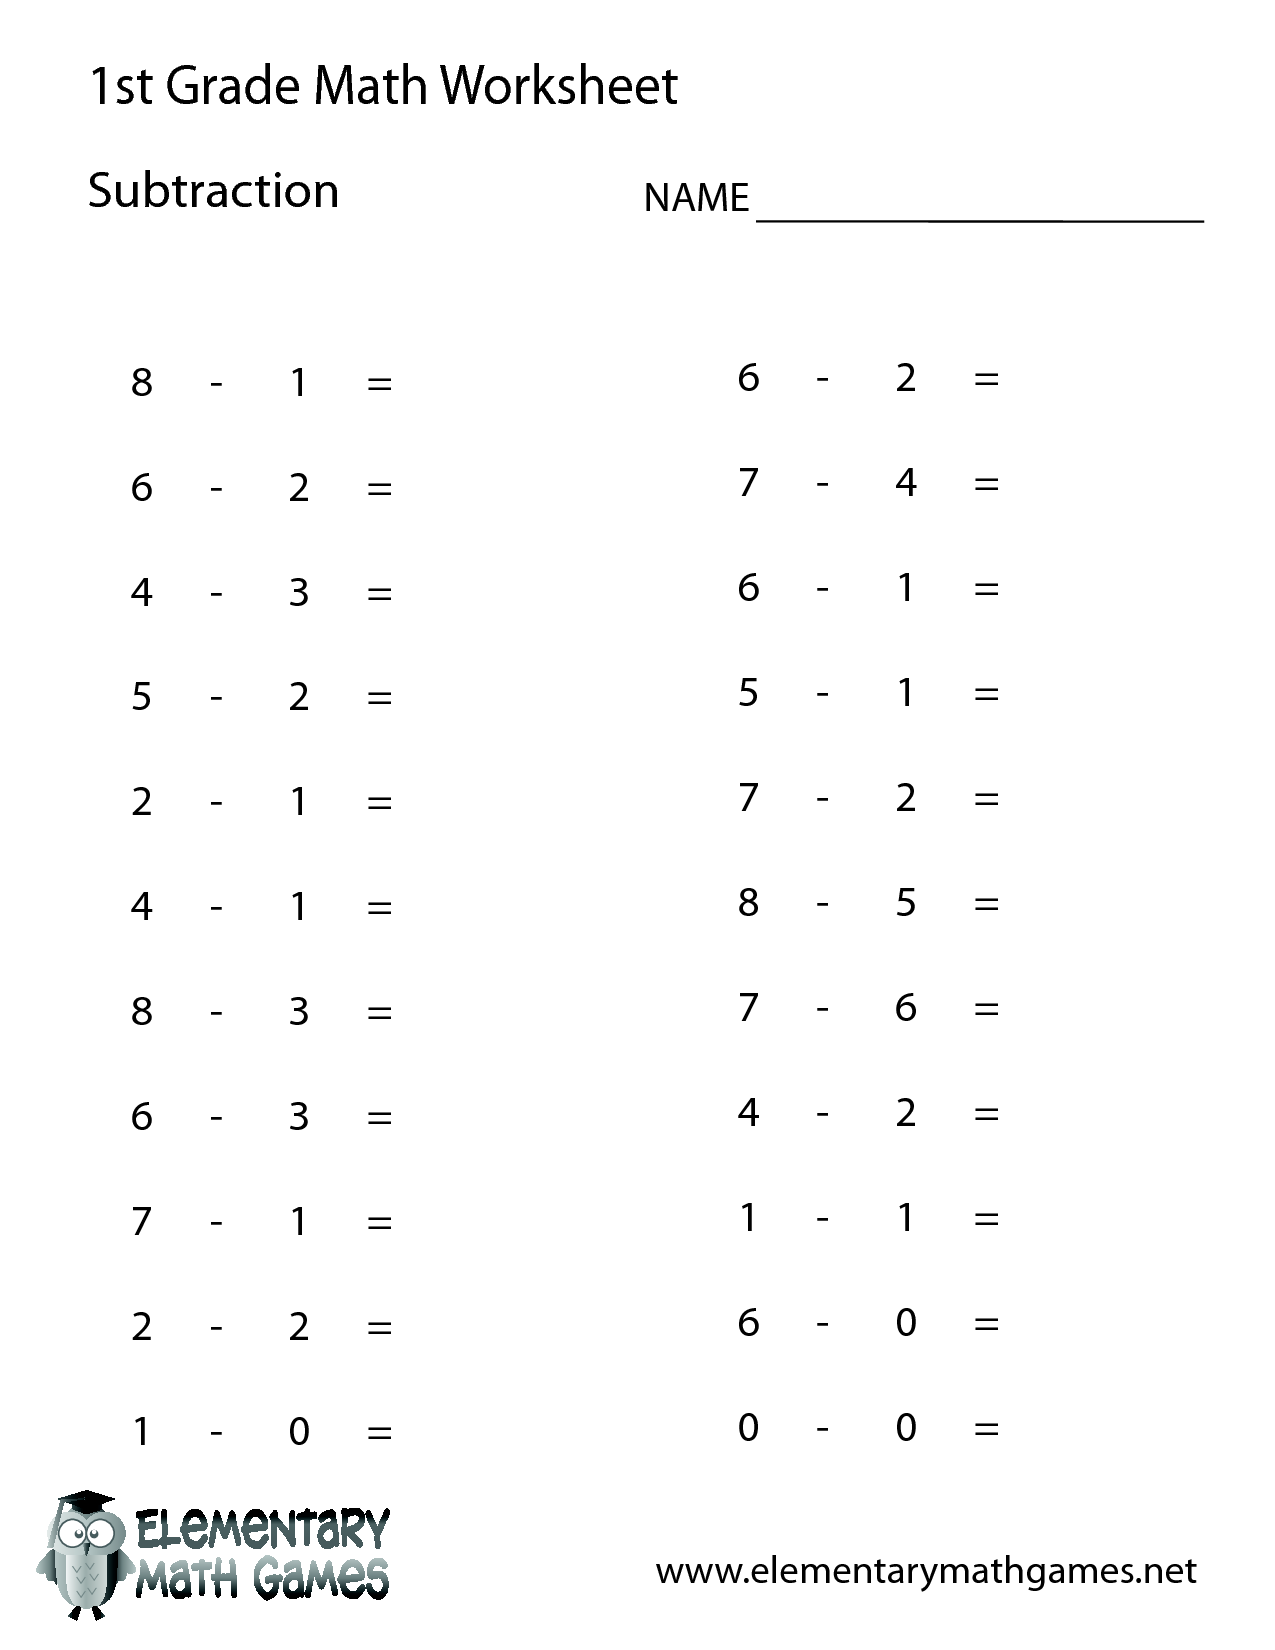 Printables First Grade Subtraction Worksheets first grade addition and subtraction worksheets pichaglobal